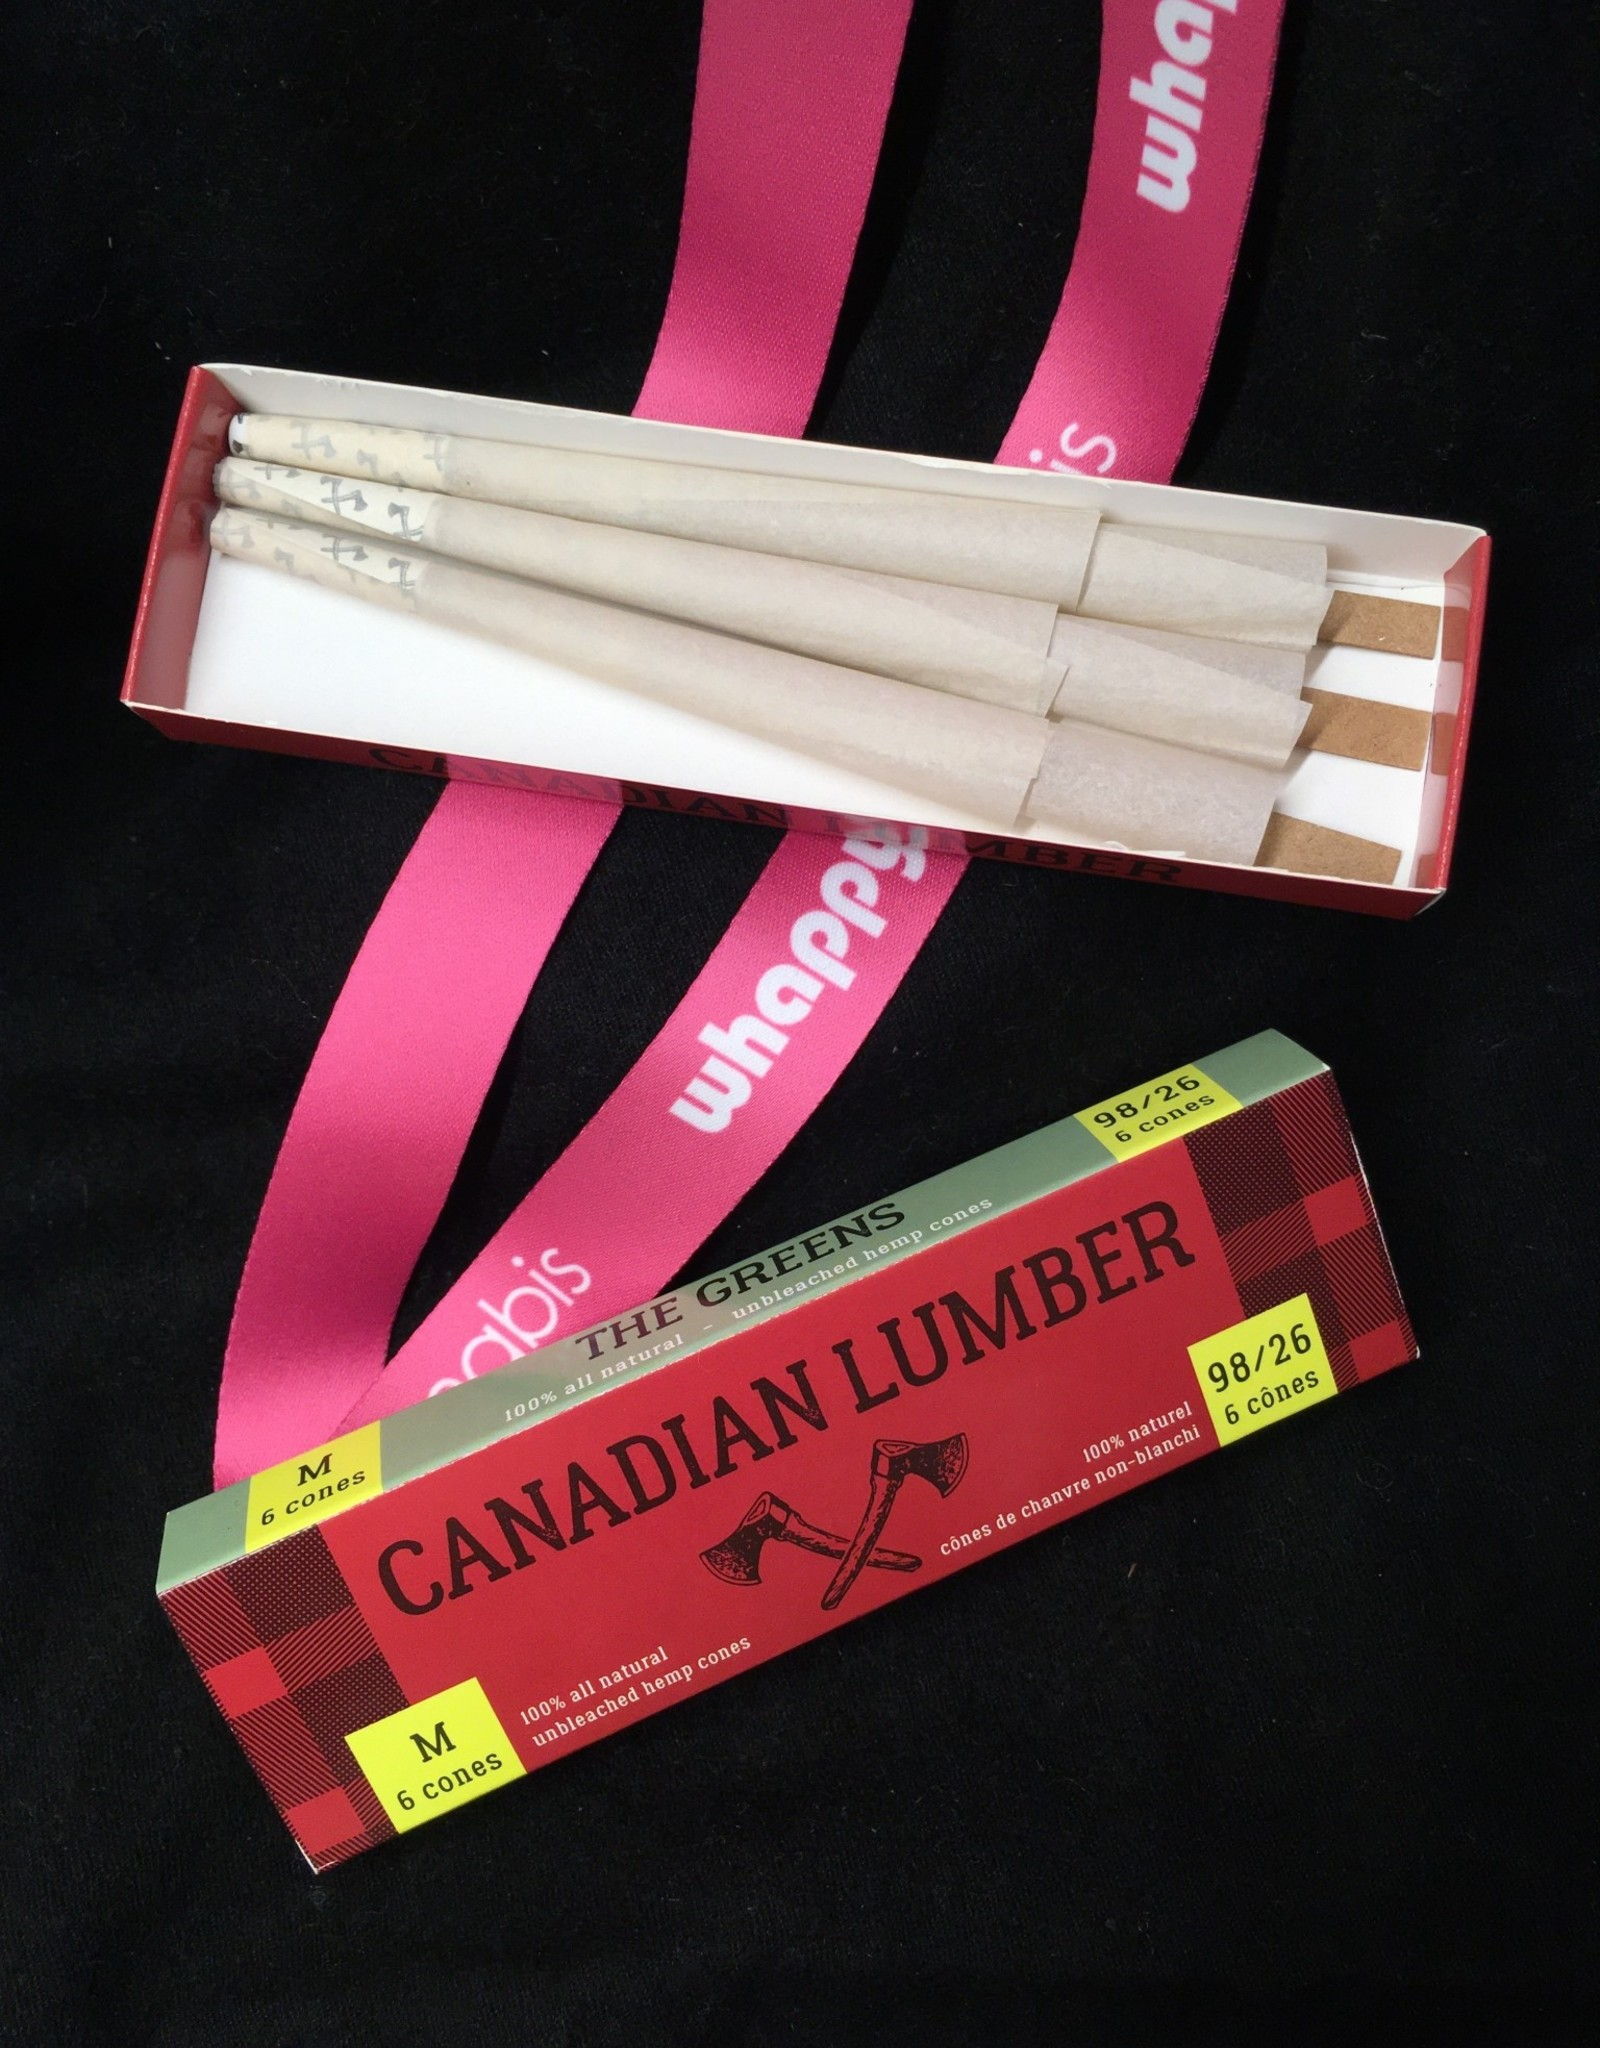 Canadian Lumber Canadian Lumber - Greens Hemp Pre-Rolled Cones (6pc)